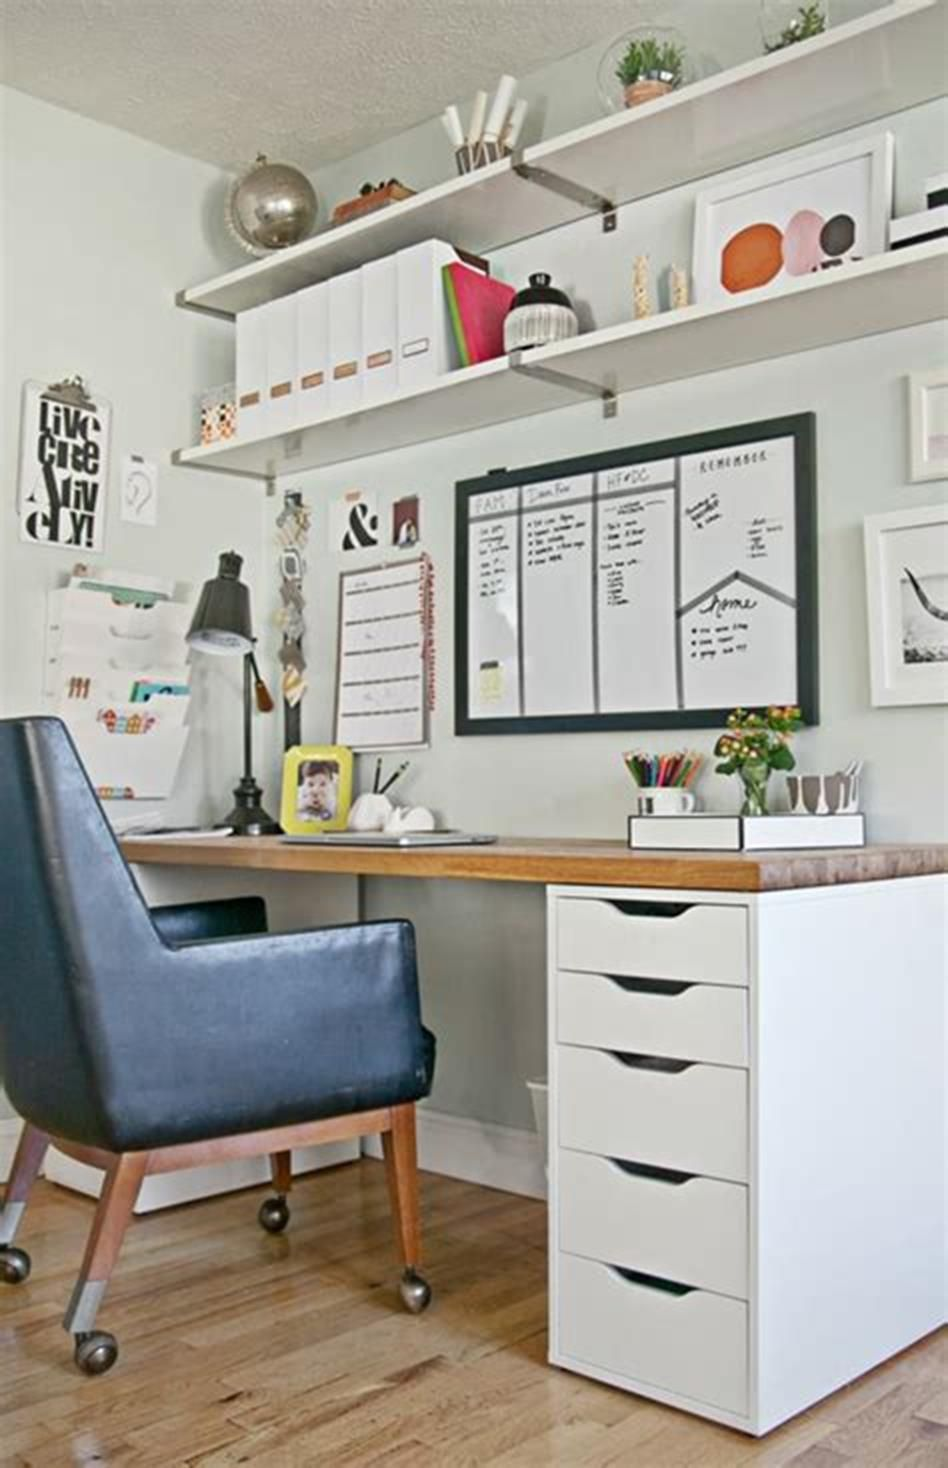 50 Cheap Ikea Home Office Furniture With Design And Decorating Ideas Decorewarding Home Office Space Home Office Furniture Shared Home Offices